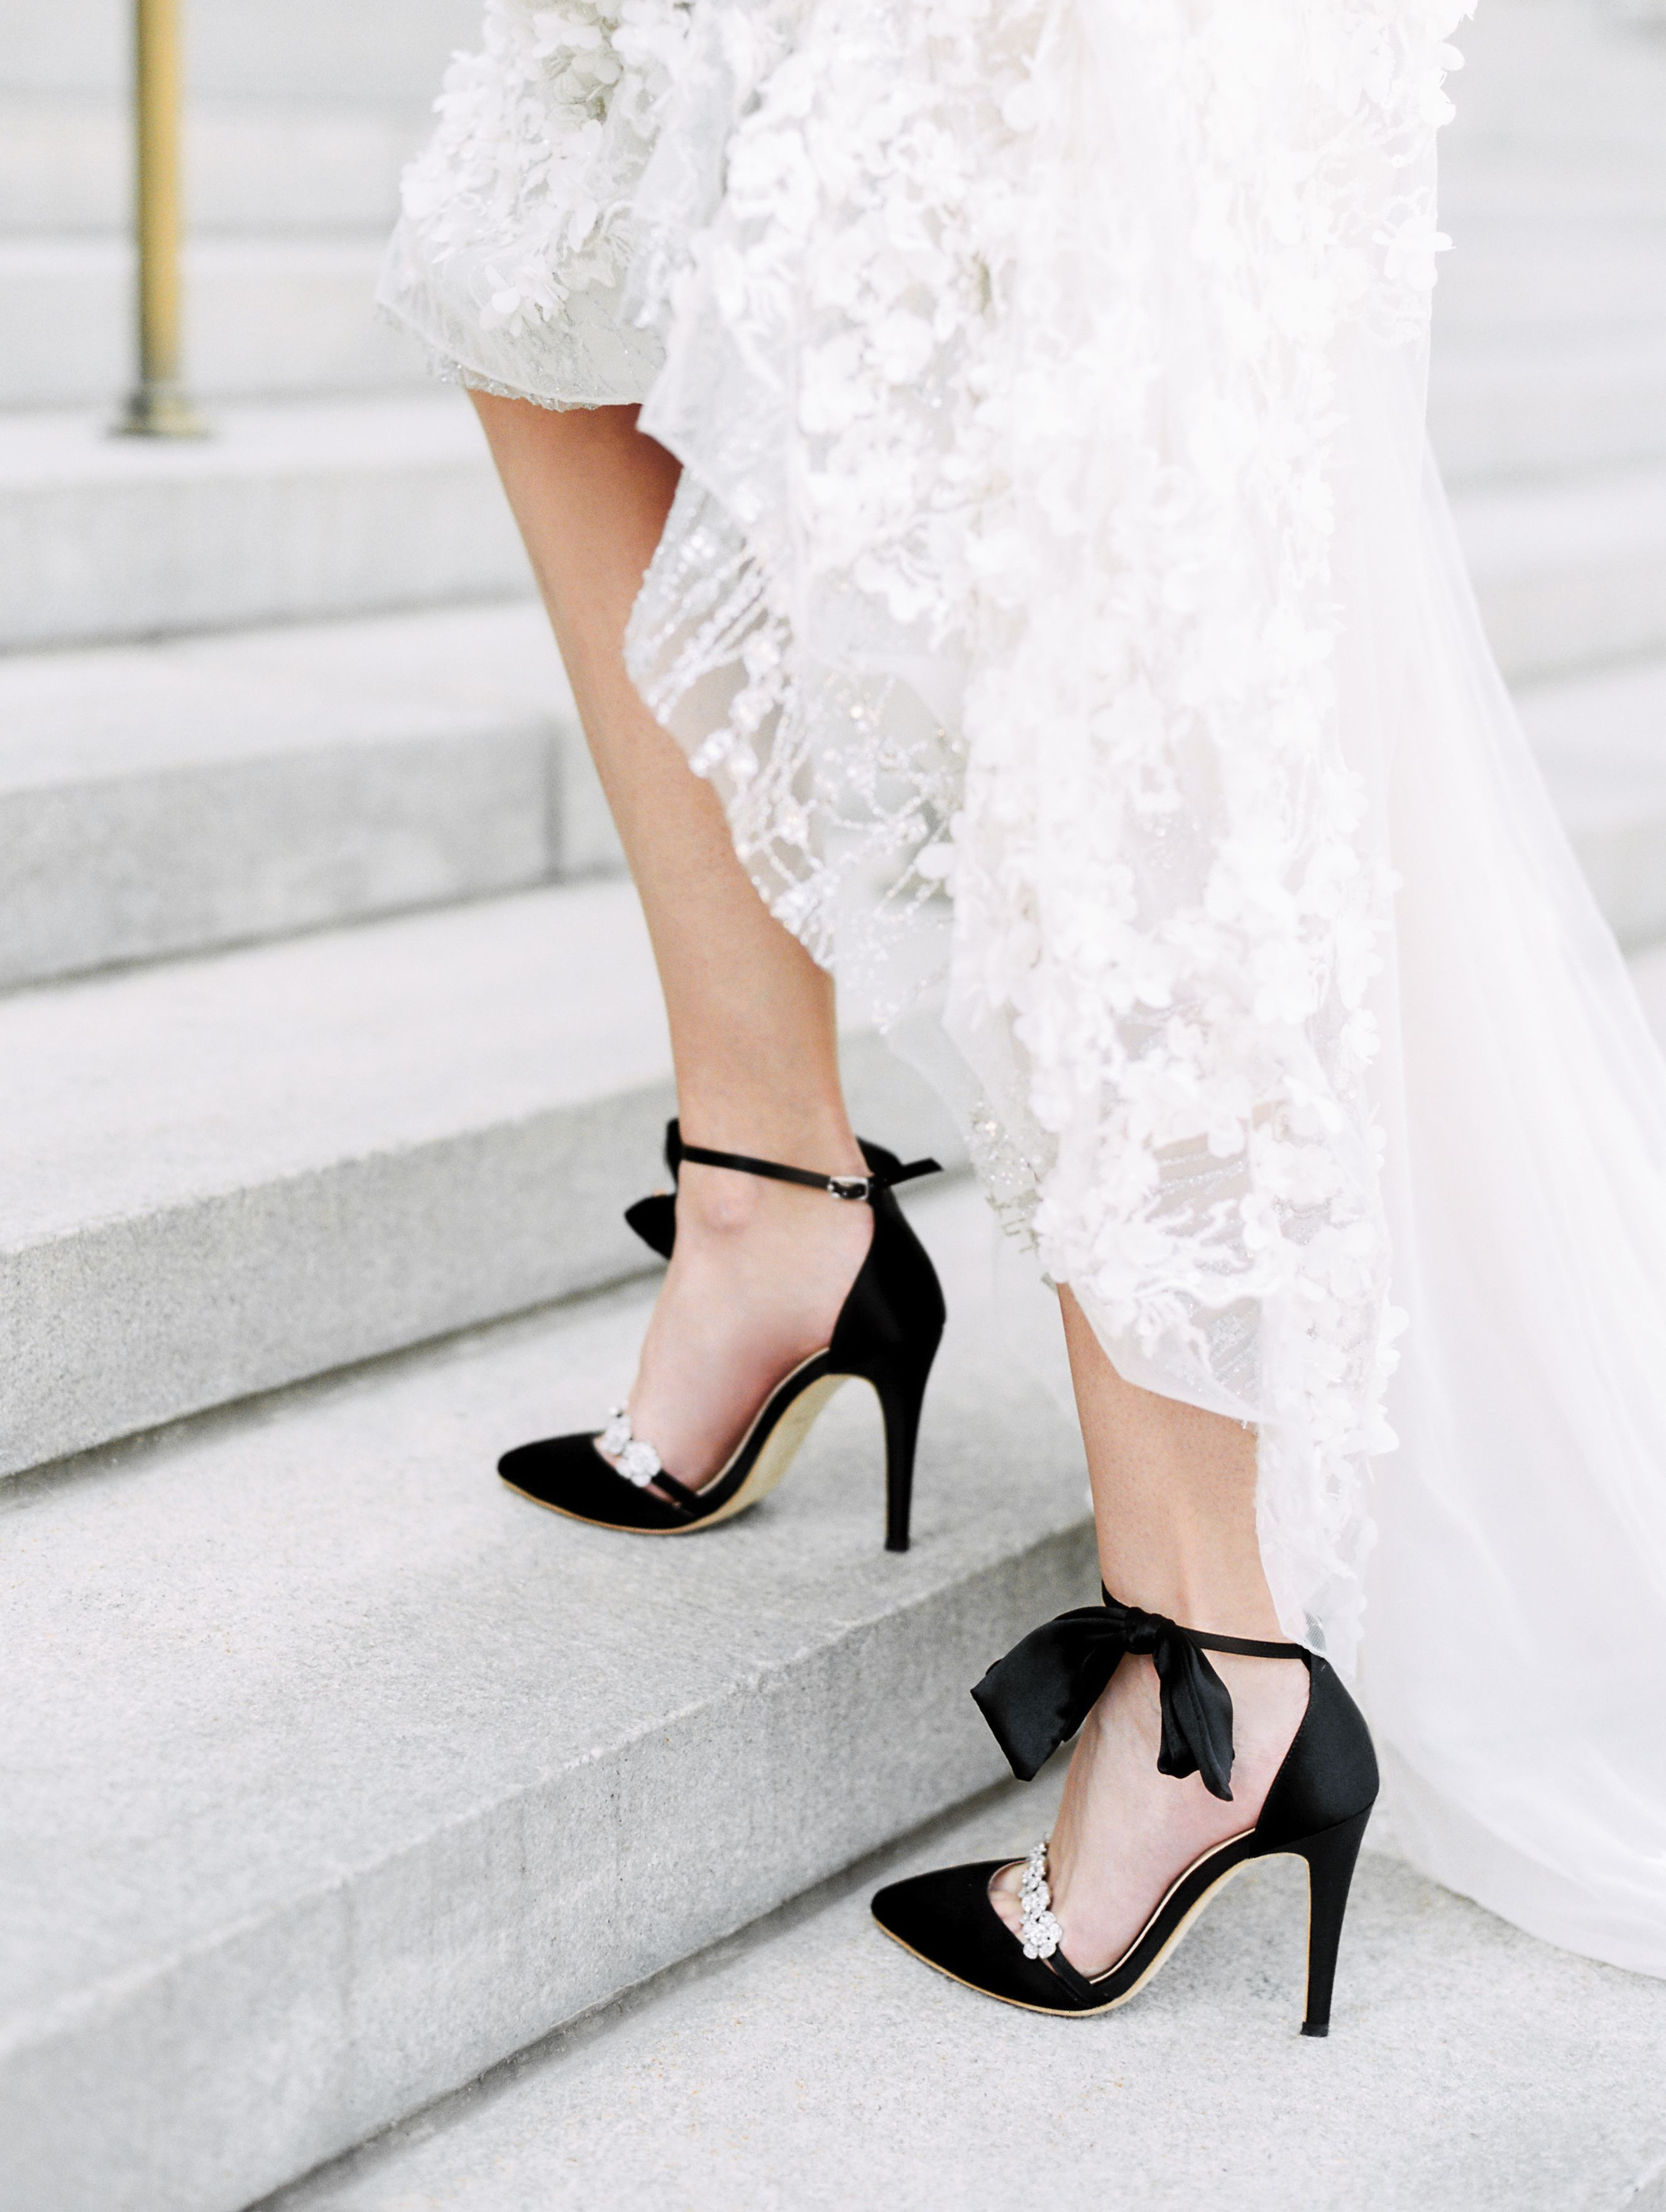 Heels With Bow Ankle Strap And Rhinestone Ankle Strap Heels Black Evening Shoes Sparkly Wedding Shoes Bridal Shoes [ 3520 x 2651 Pixel ]